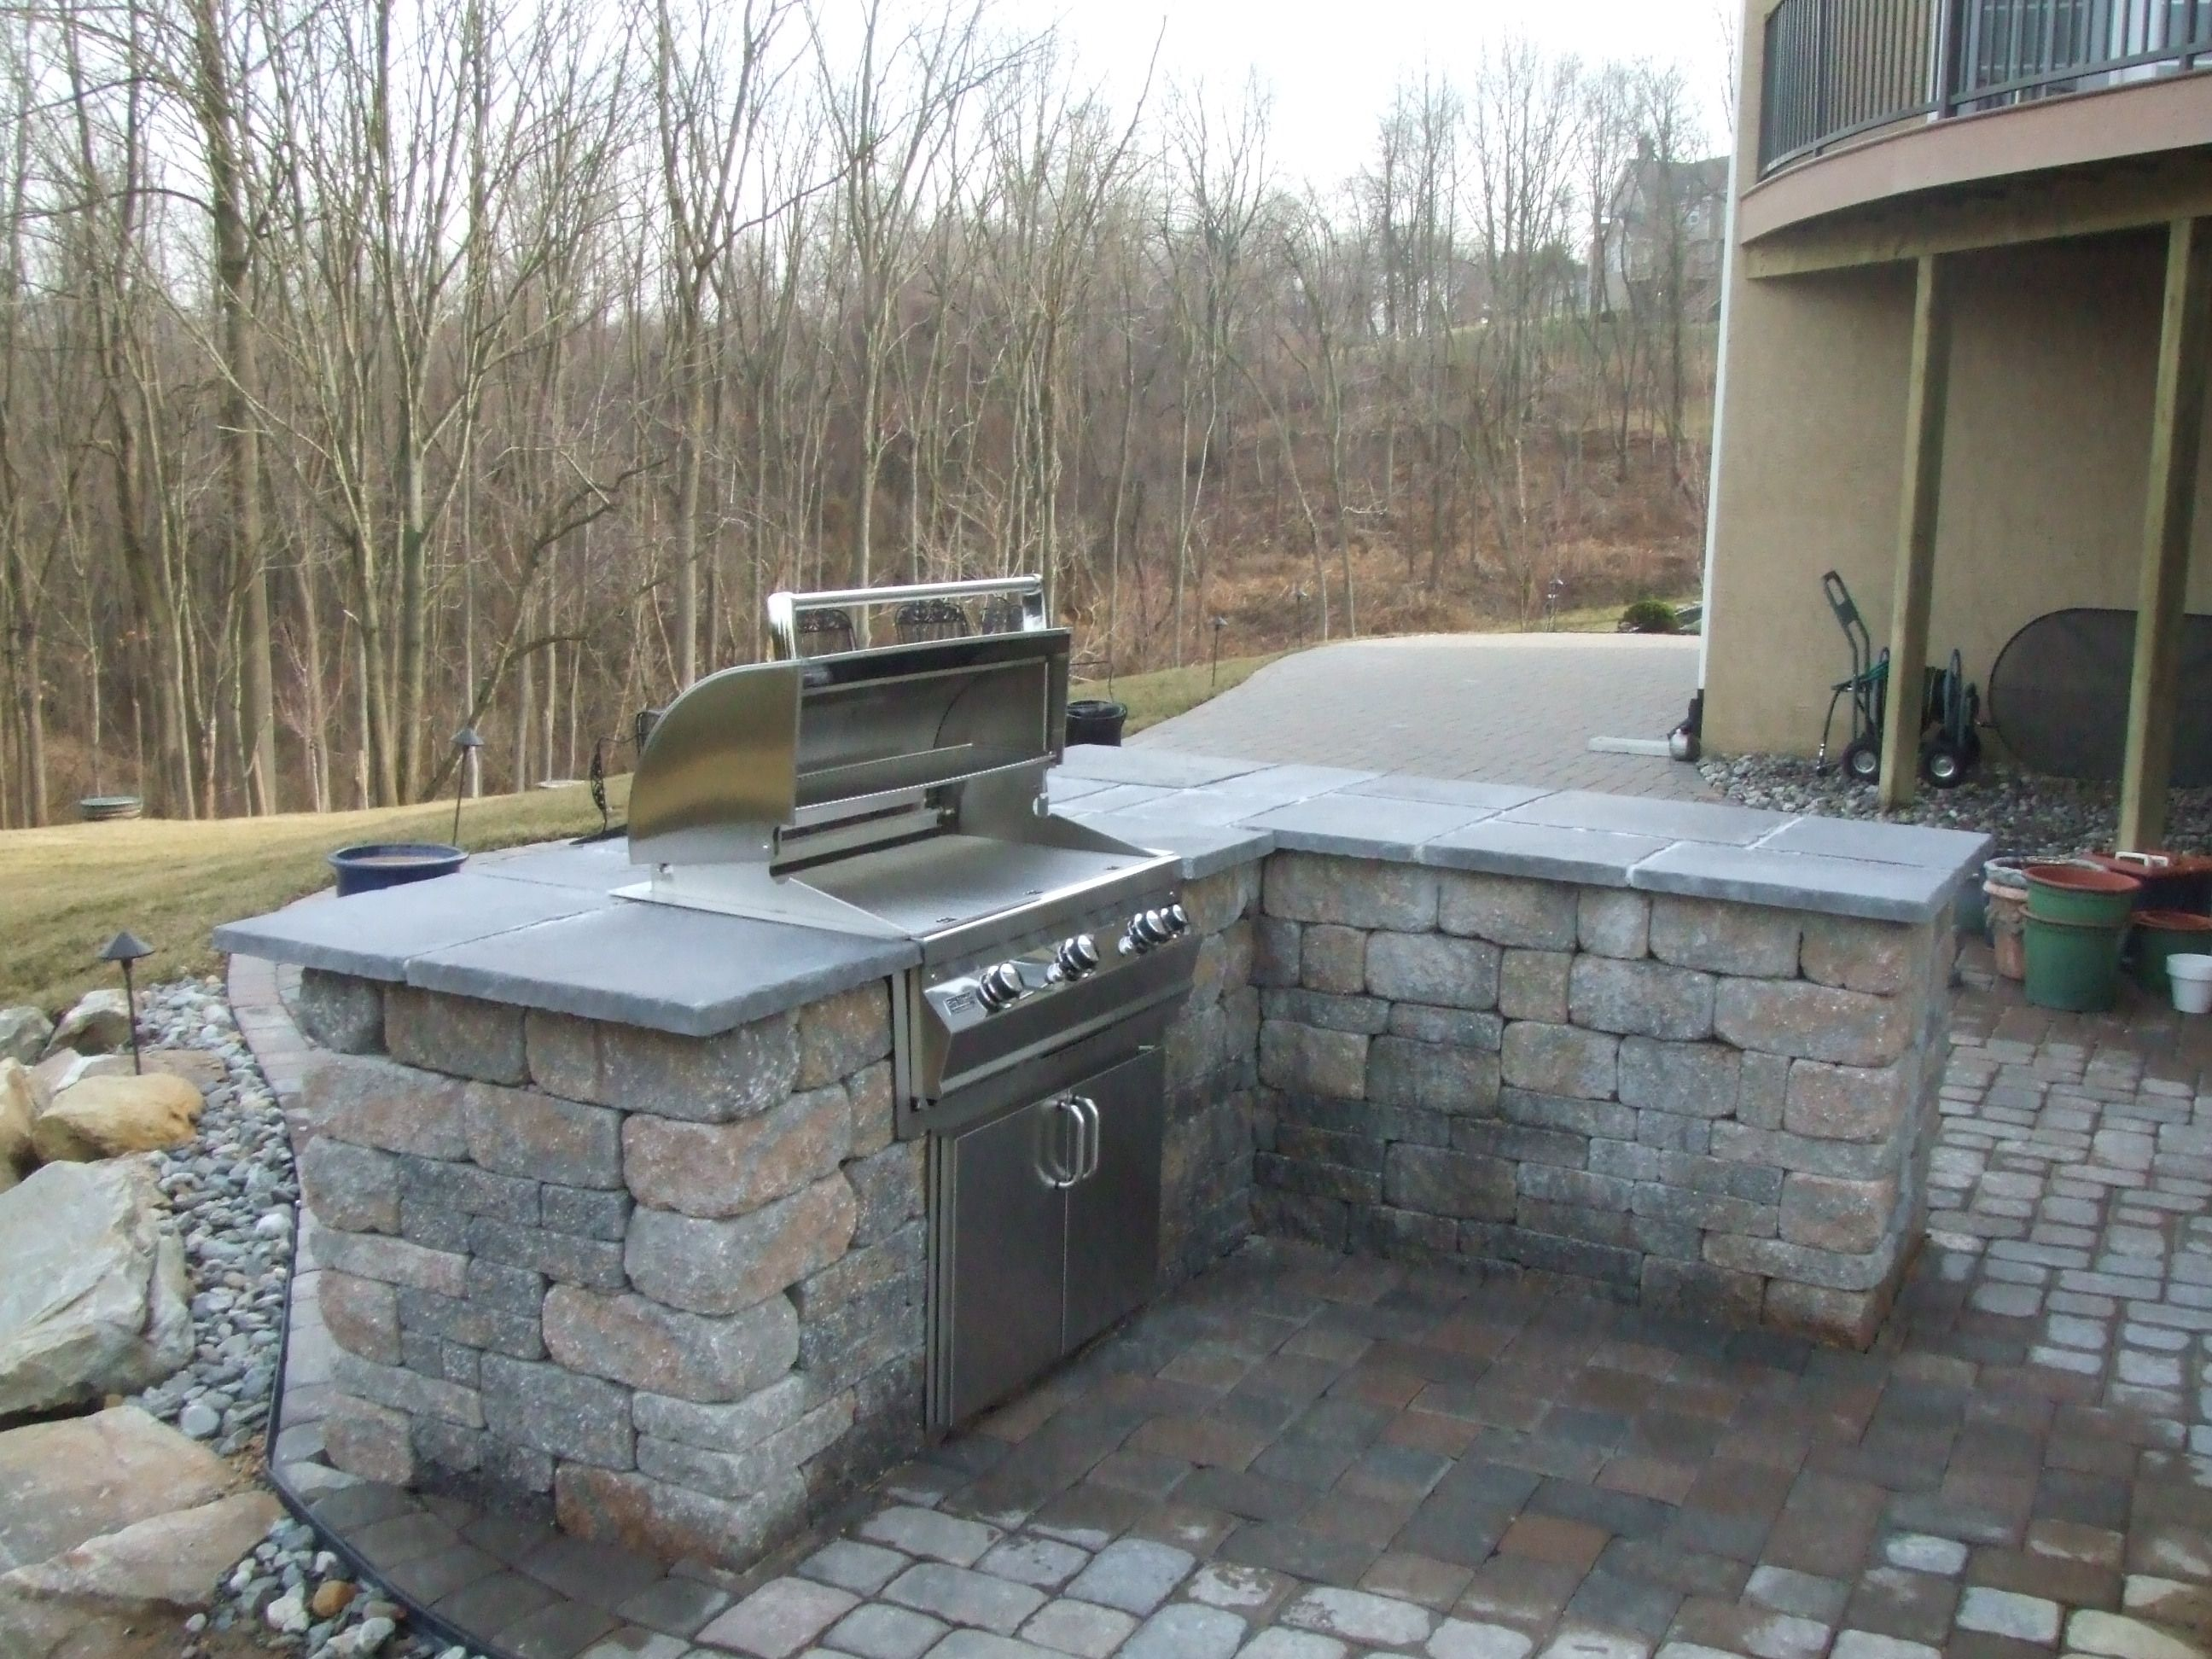 Ideas For The Builtin Gas Grill Ron's Planning To Build On The Patio